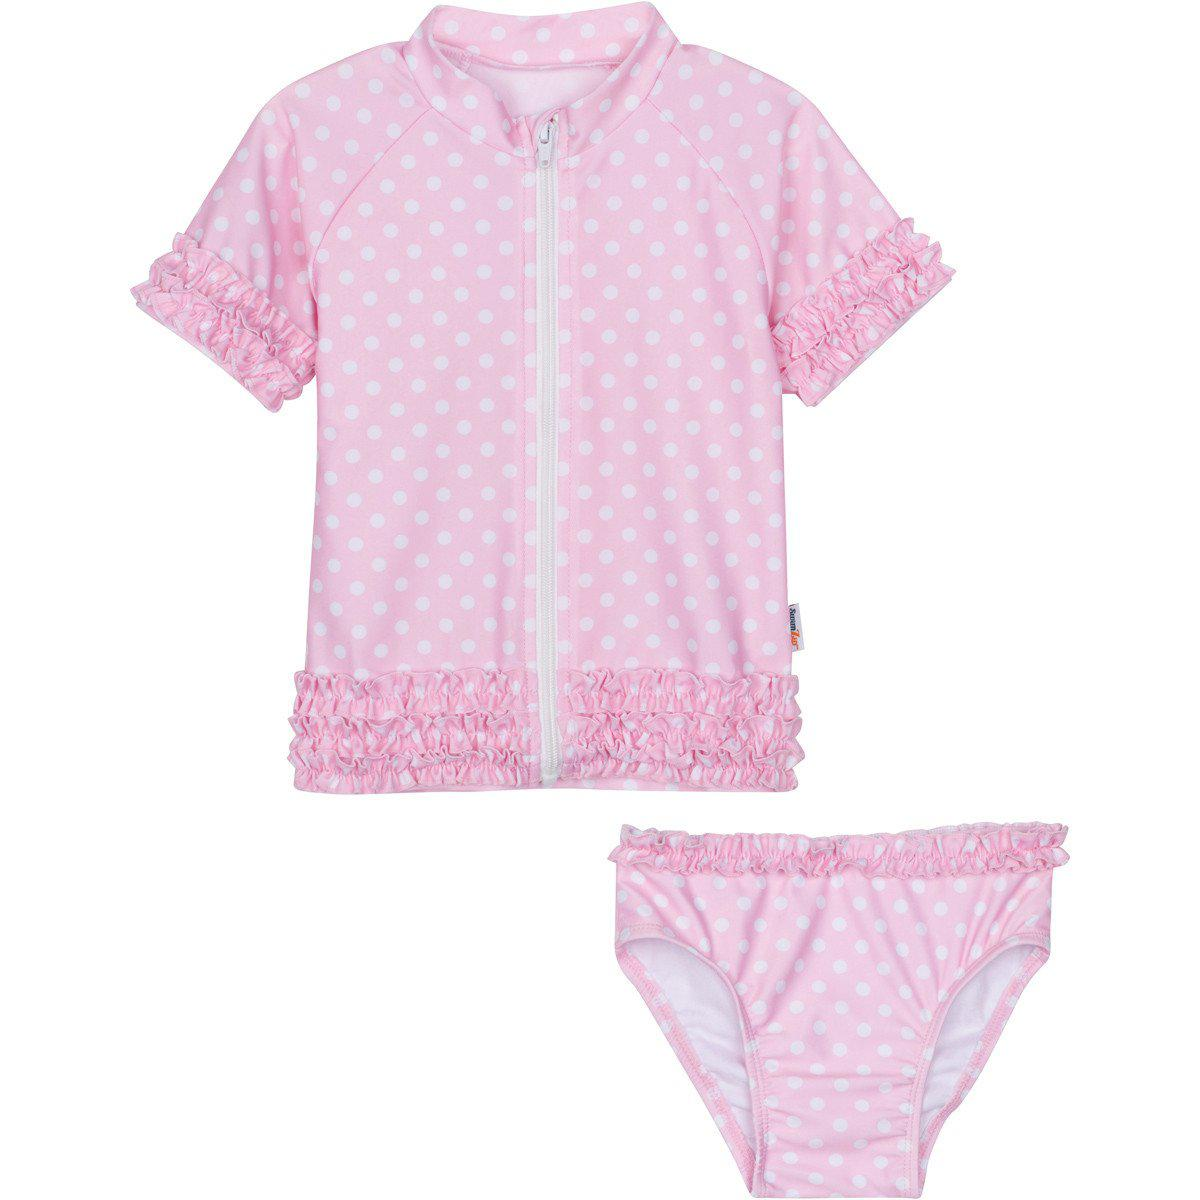 little girl pink polka dot ruffle swimsuit set zipper rash guard top by swimzip